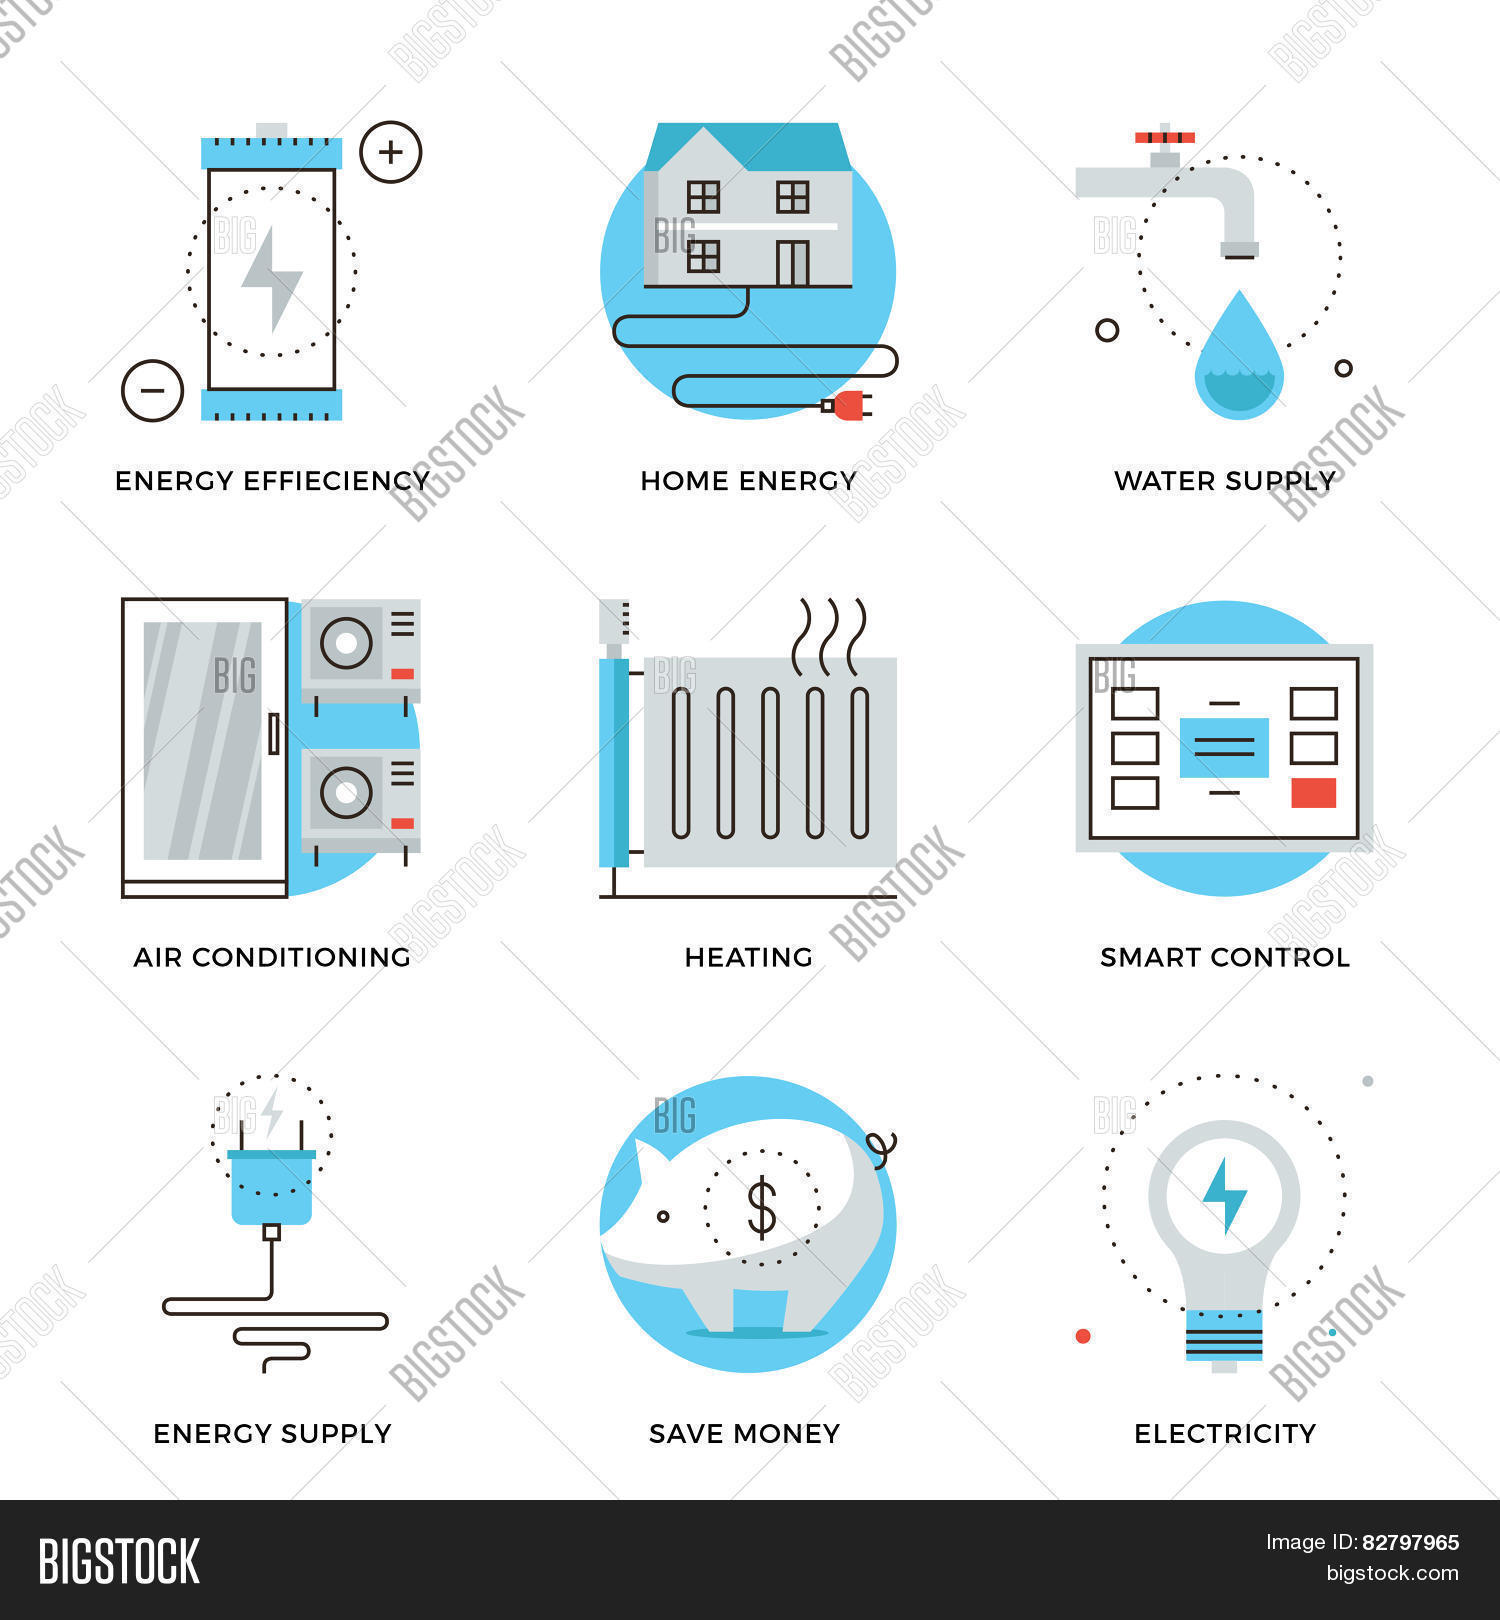 energy water heater the aquanta smart water heater controlle